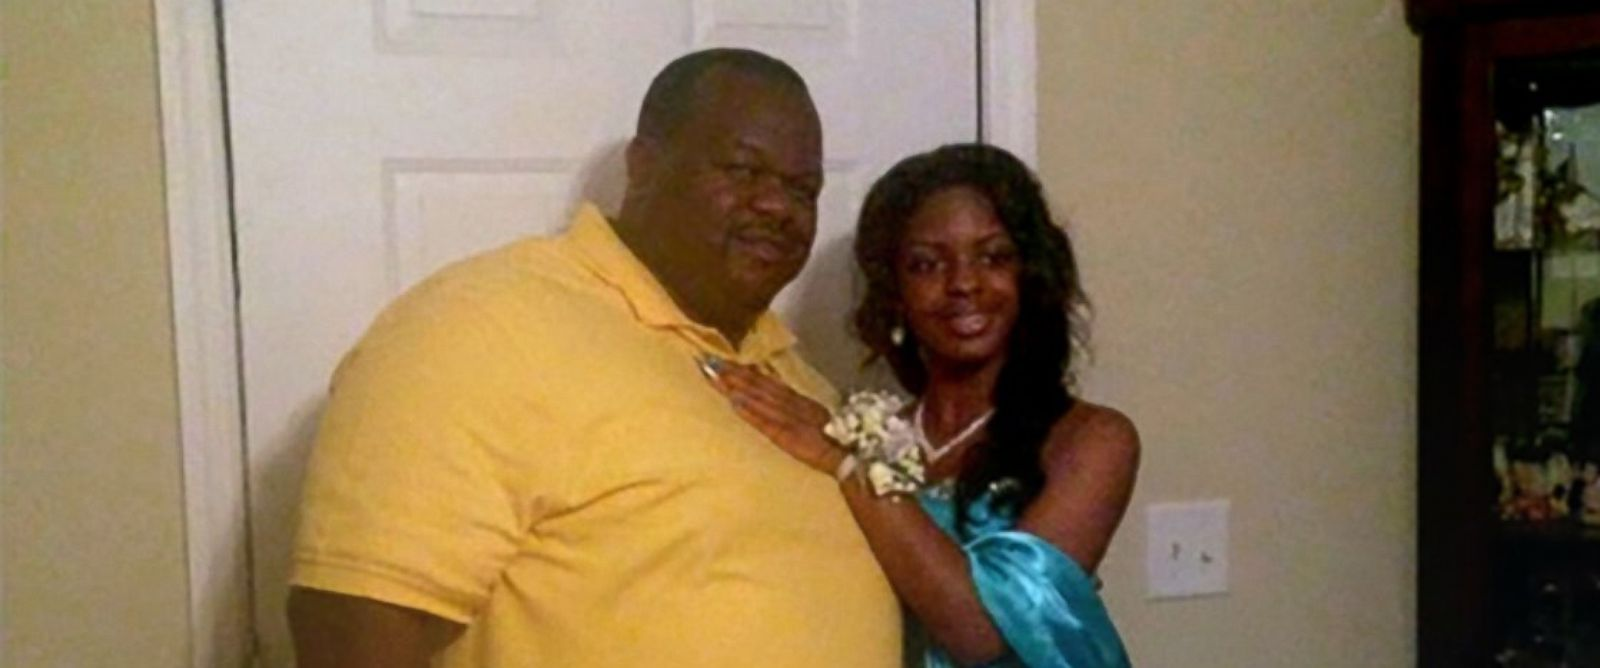 PHOTO: Charles Manigo is pictured with his daughter Alexis Kelly, who was later identified as Kamiyah Mobley, who had been abducted as a newborn.